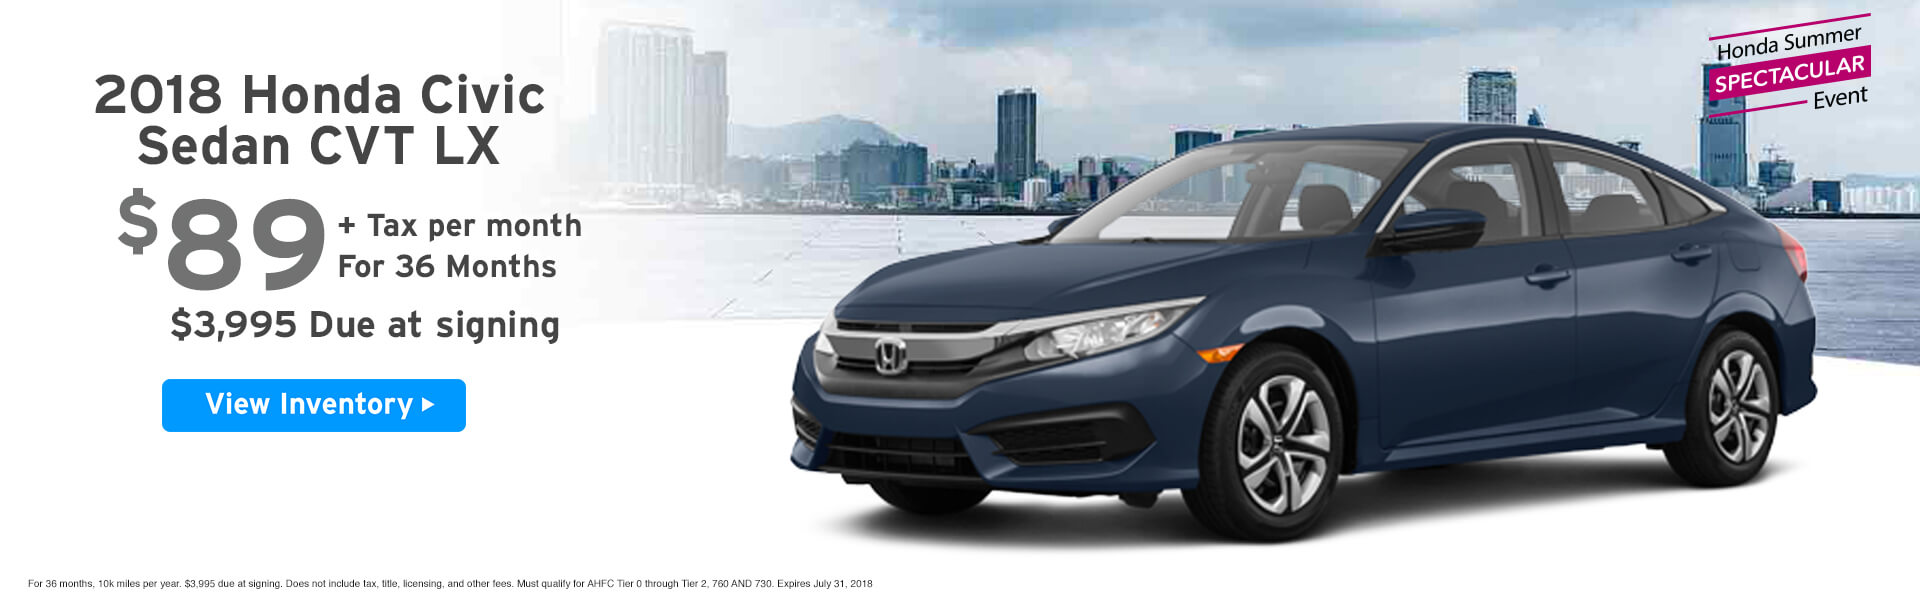 Civic Lease $89